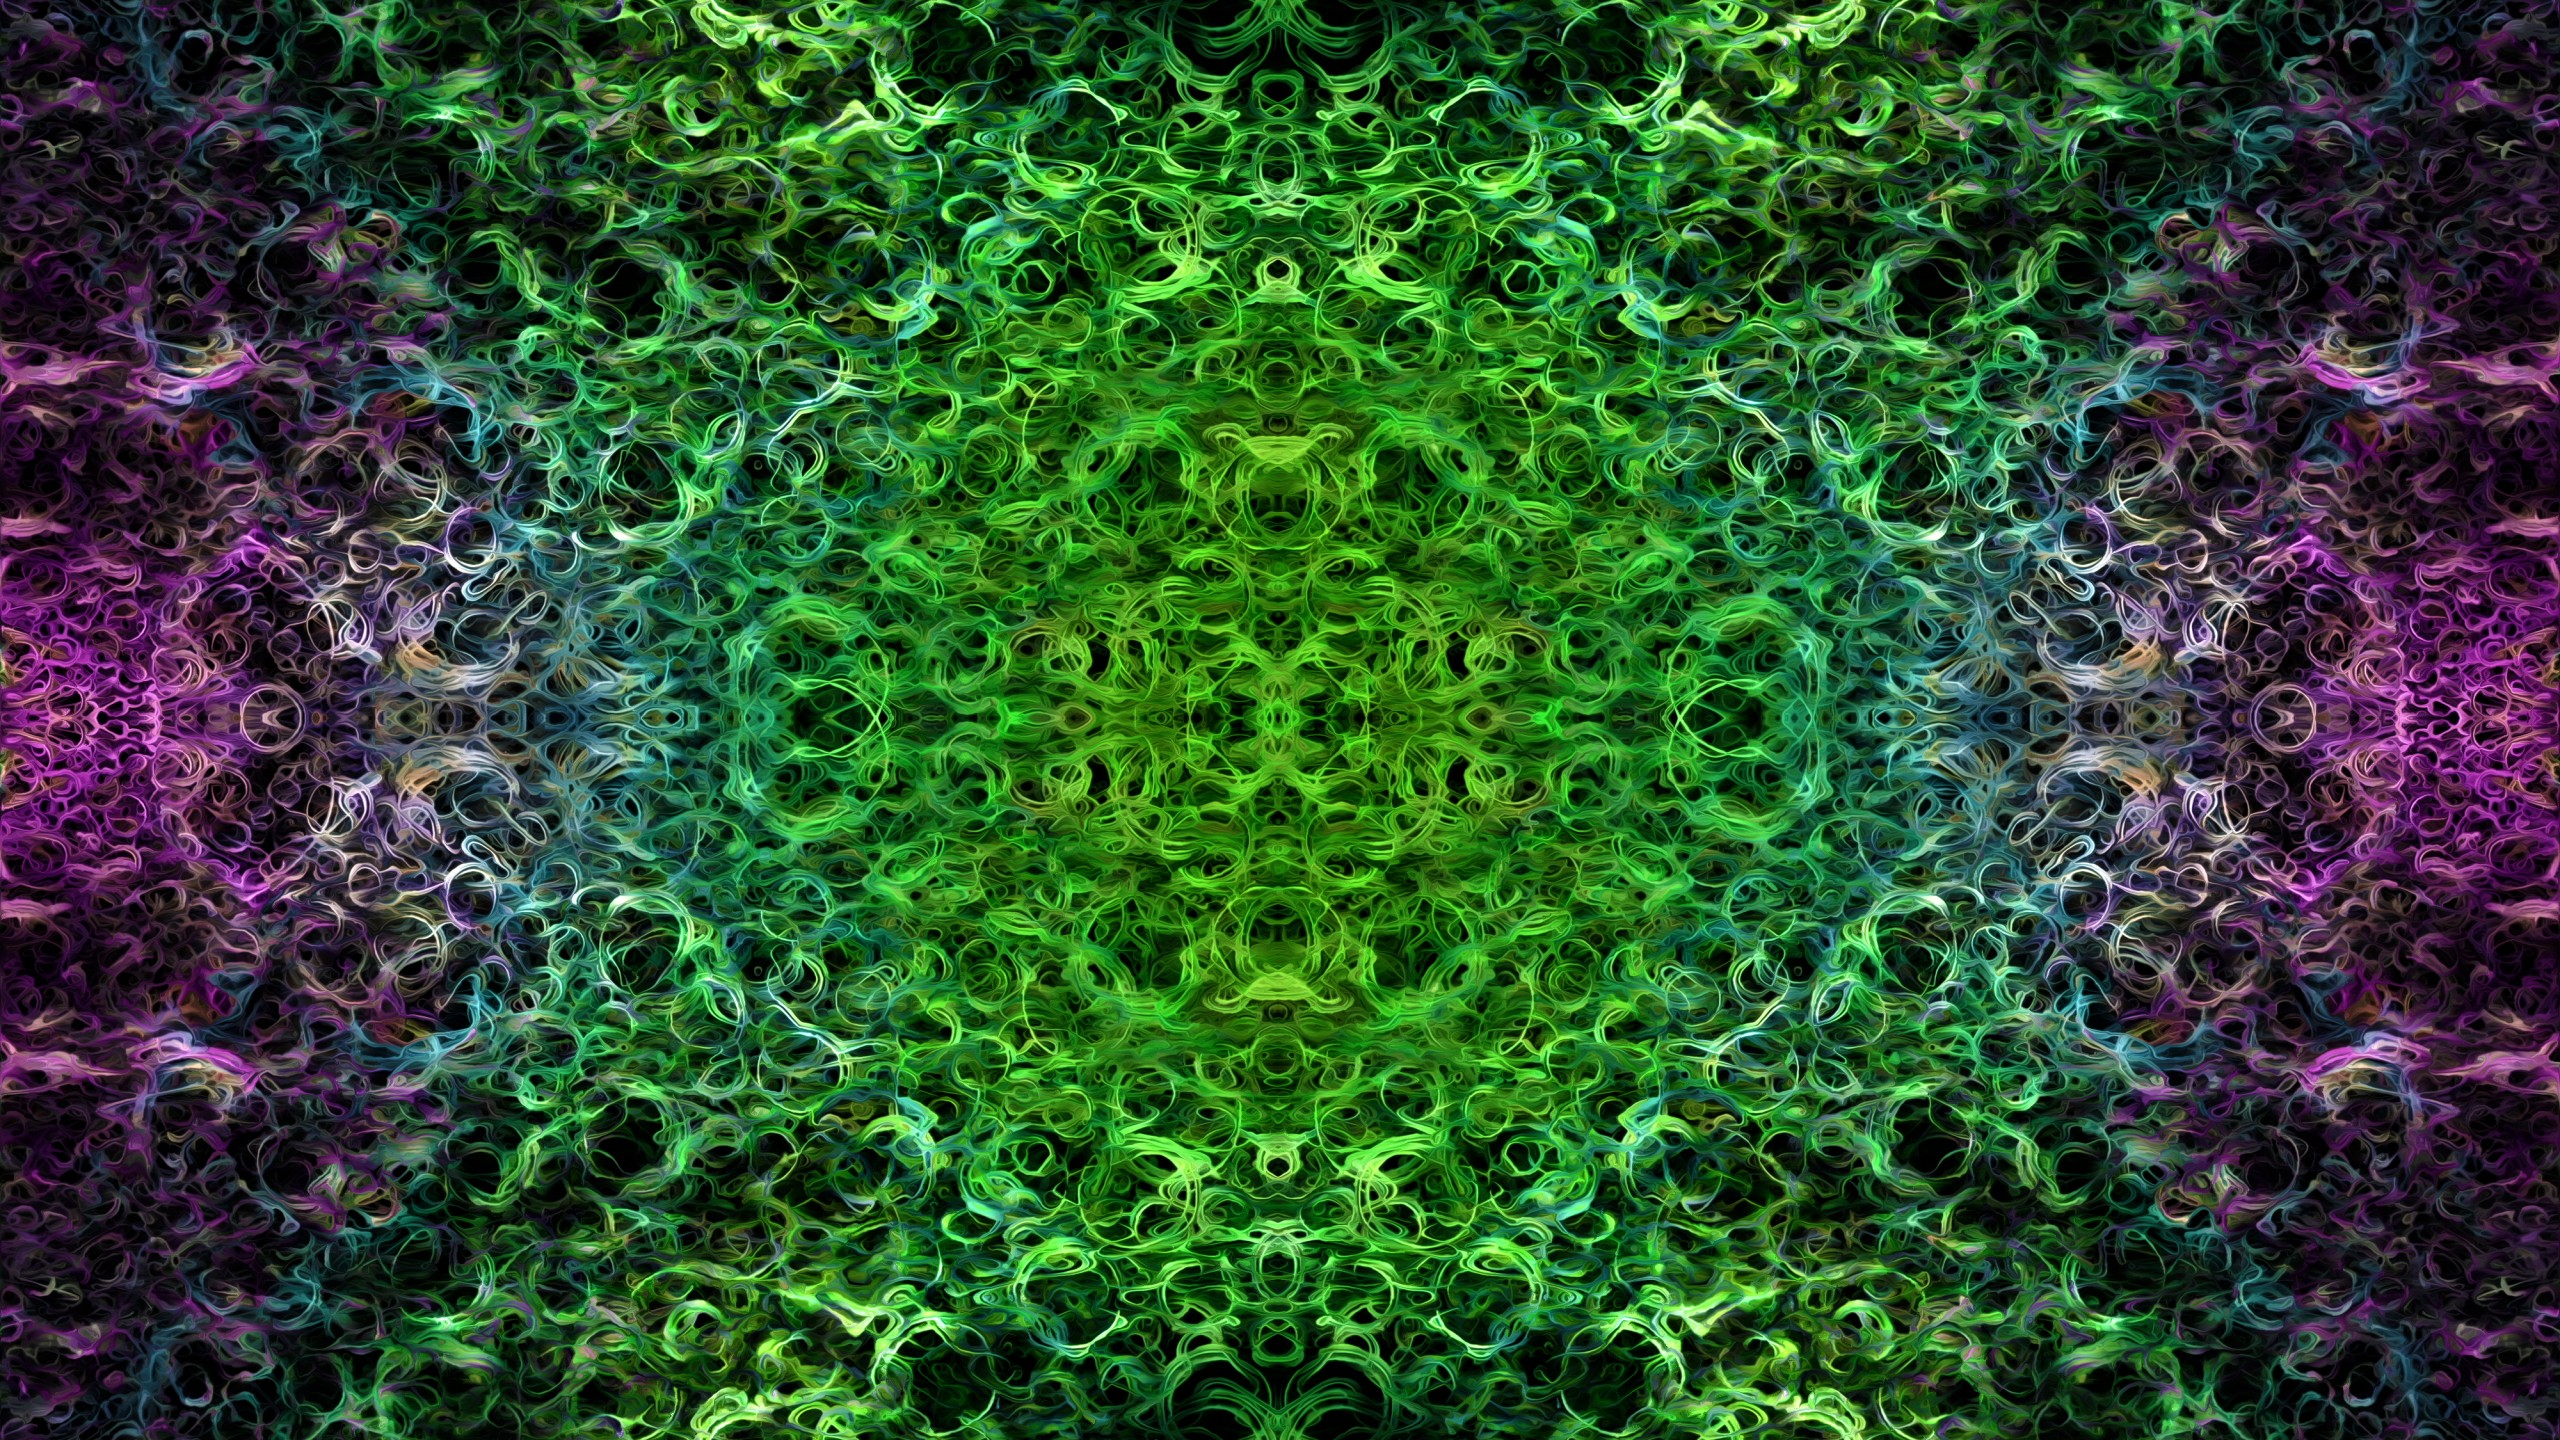 Digital Abstract Art Free Website Background Image